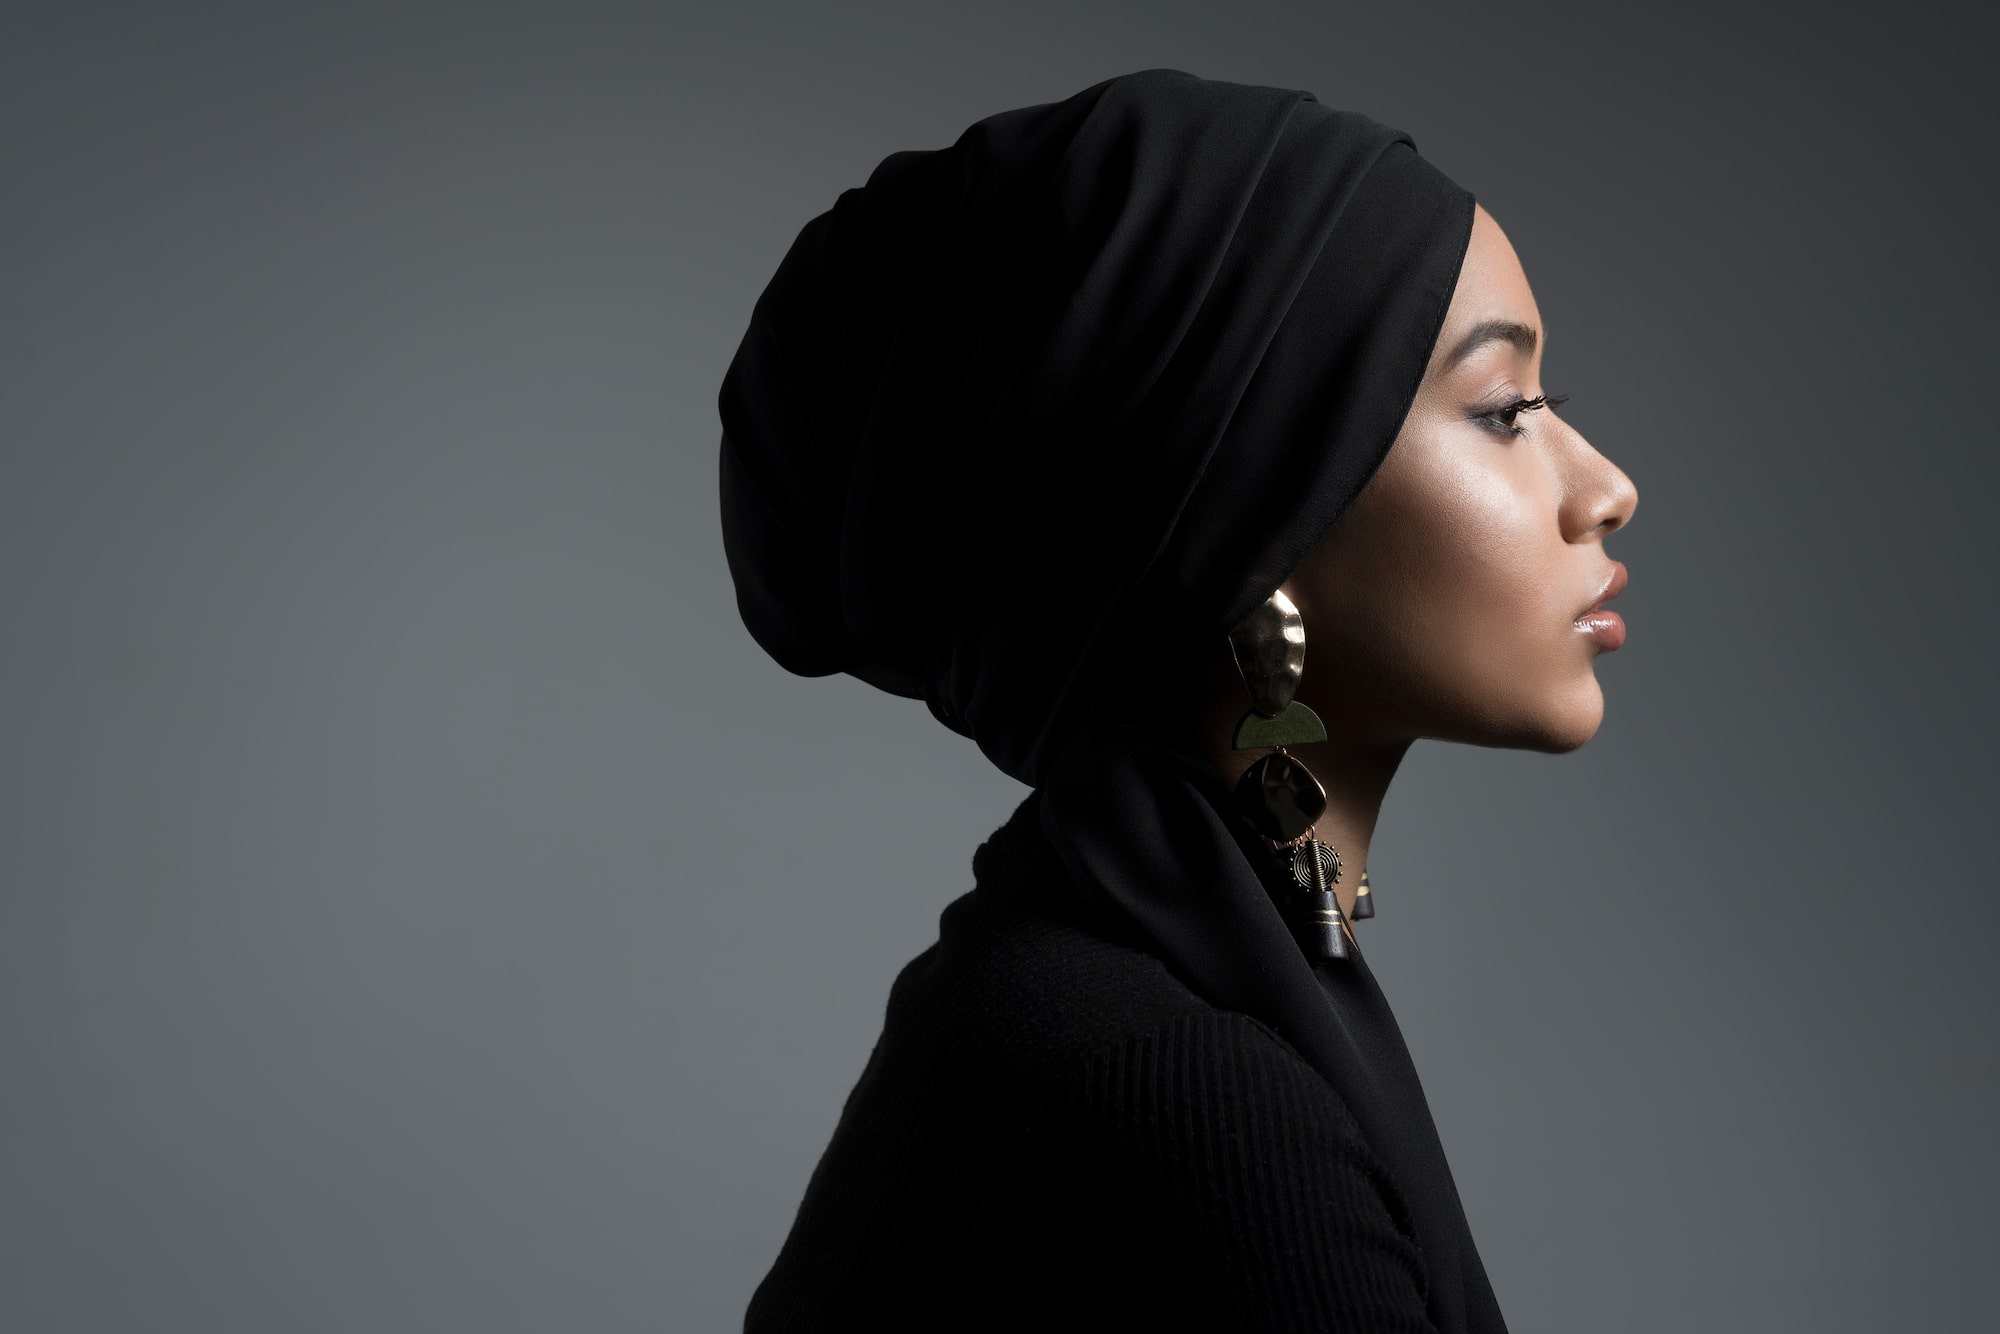 hannah-couzens-sony-alpha-7RM3-side-profile-shot-of-a-lady-wearing-a-black-headscarf